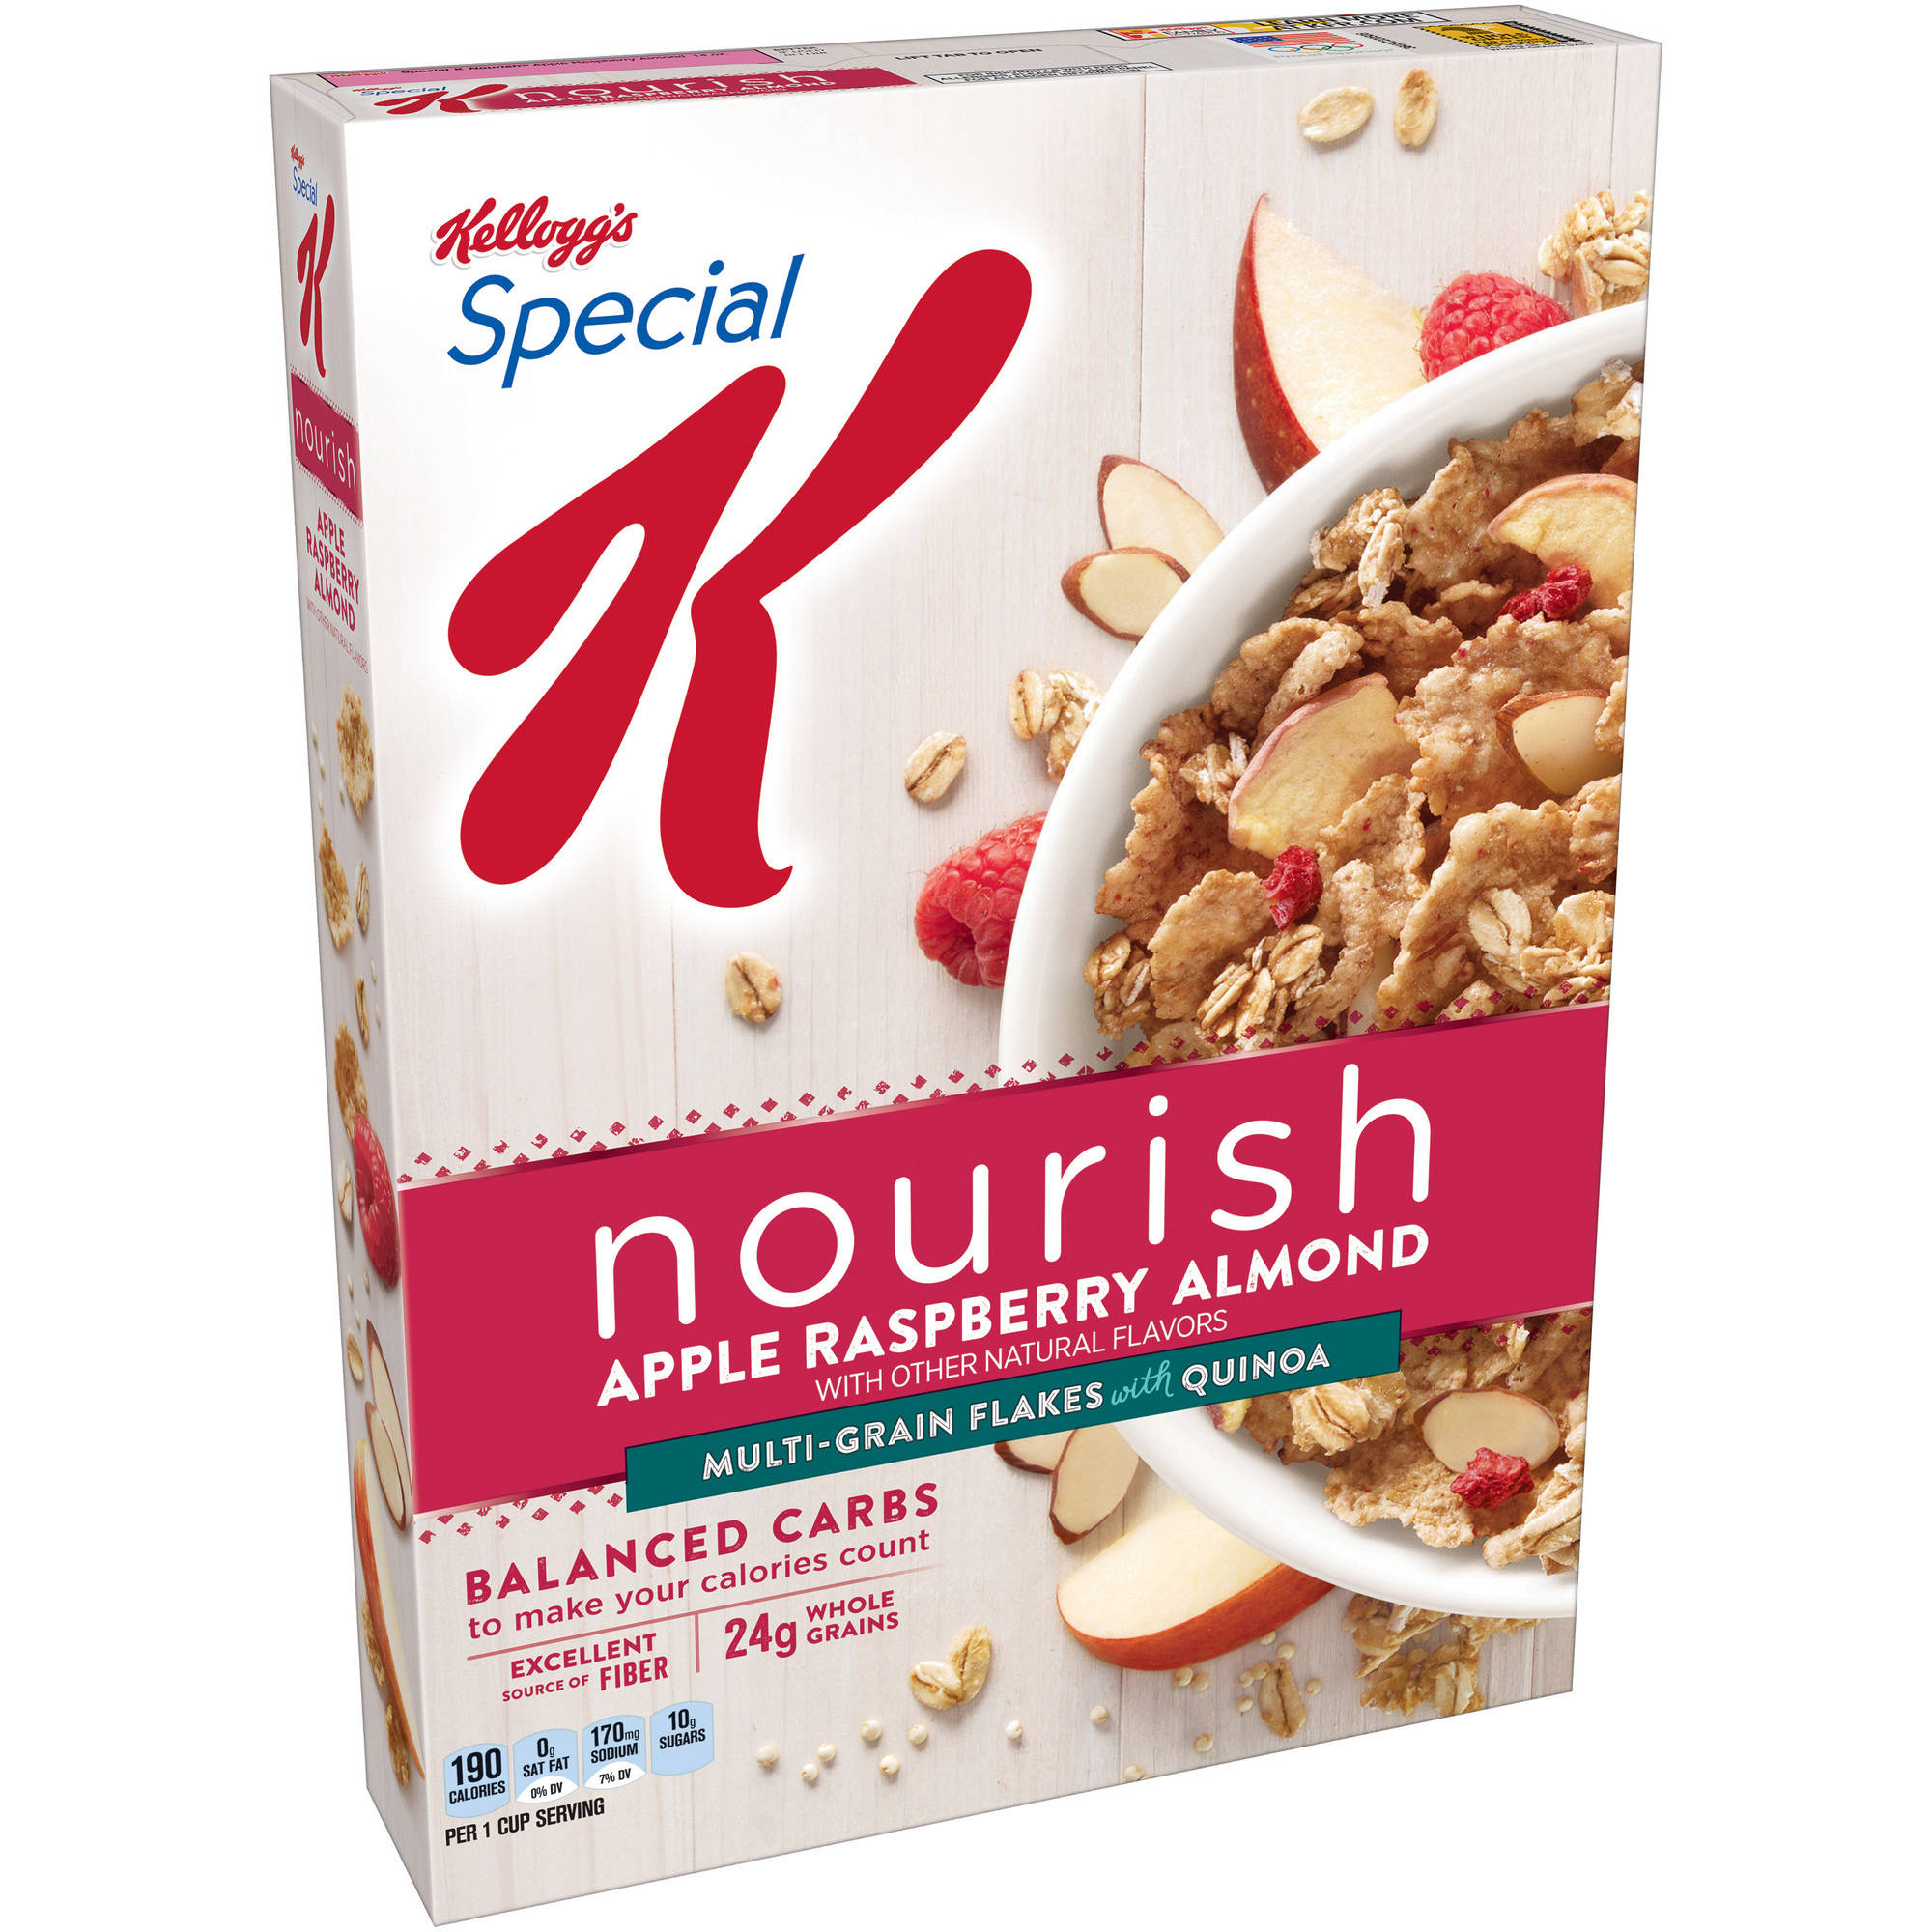 Kellogg's Special K Nourish Apple Raspberry Almond Cereal, 14 oz